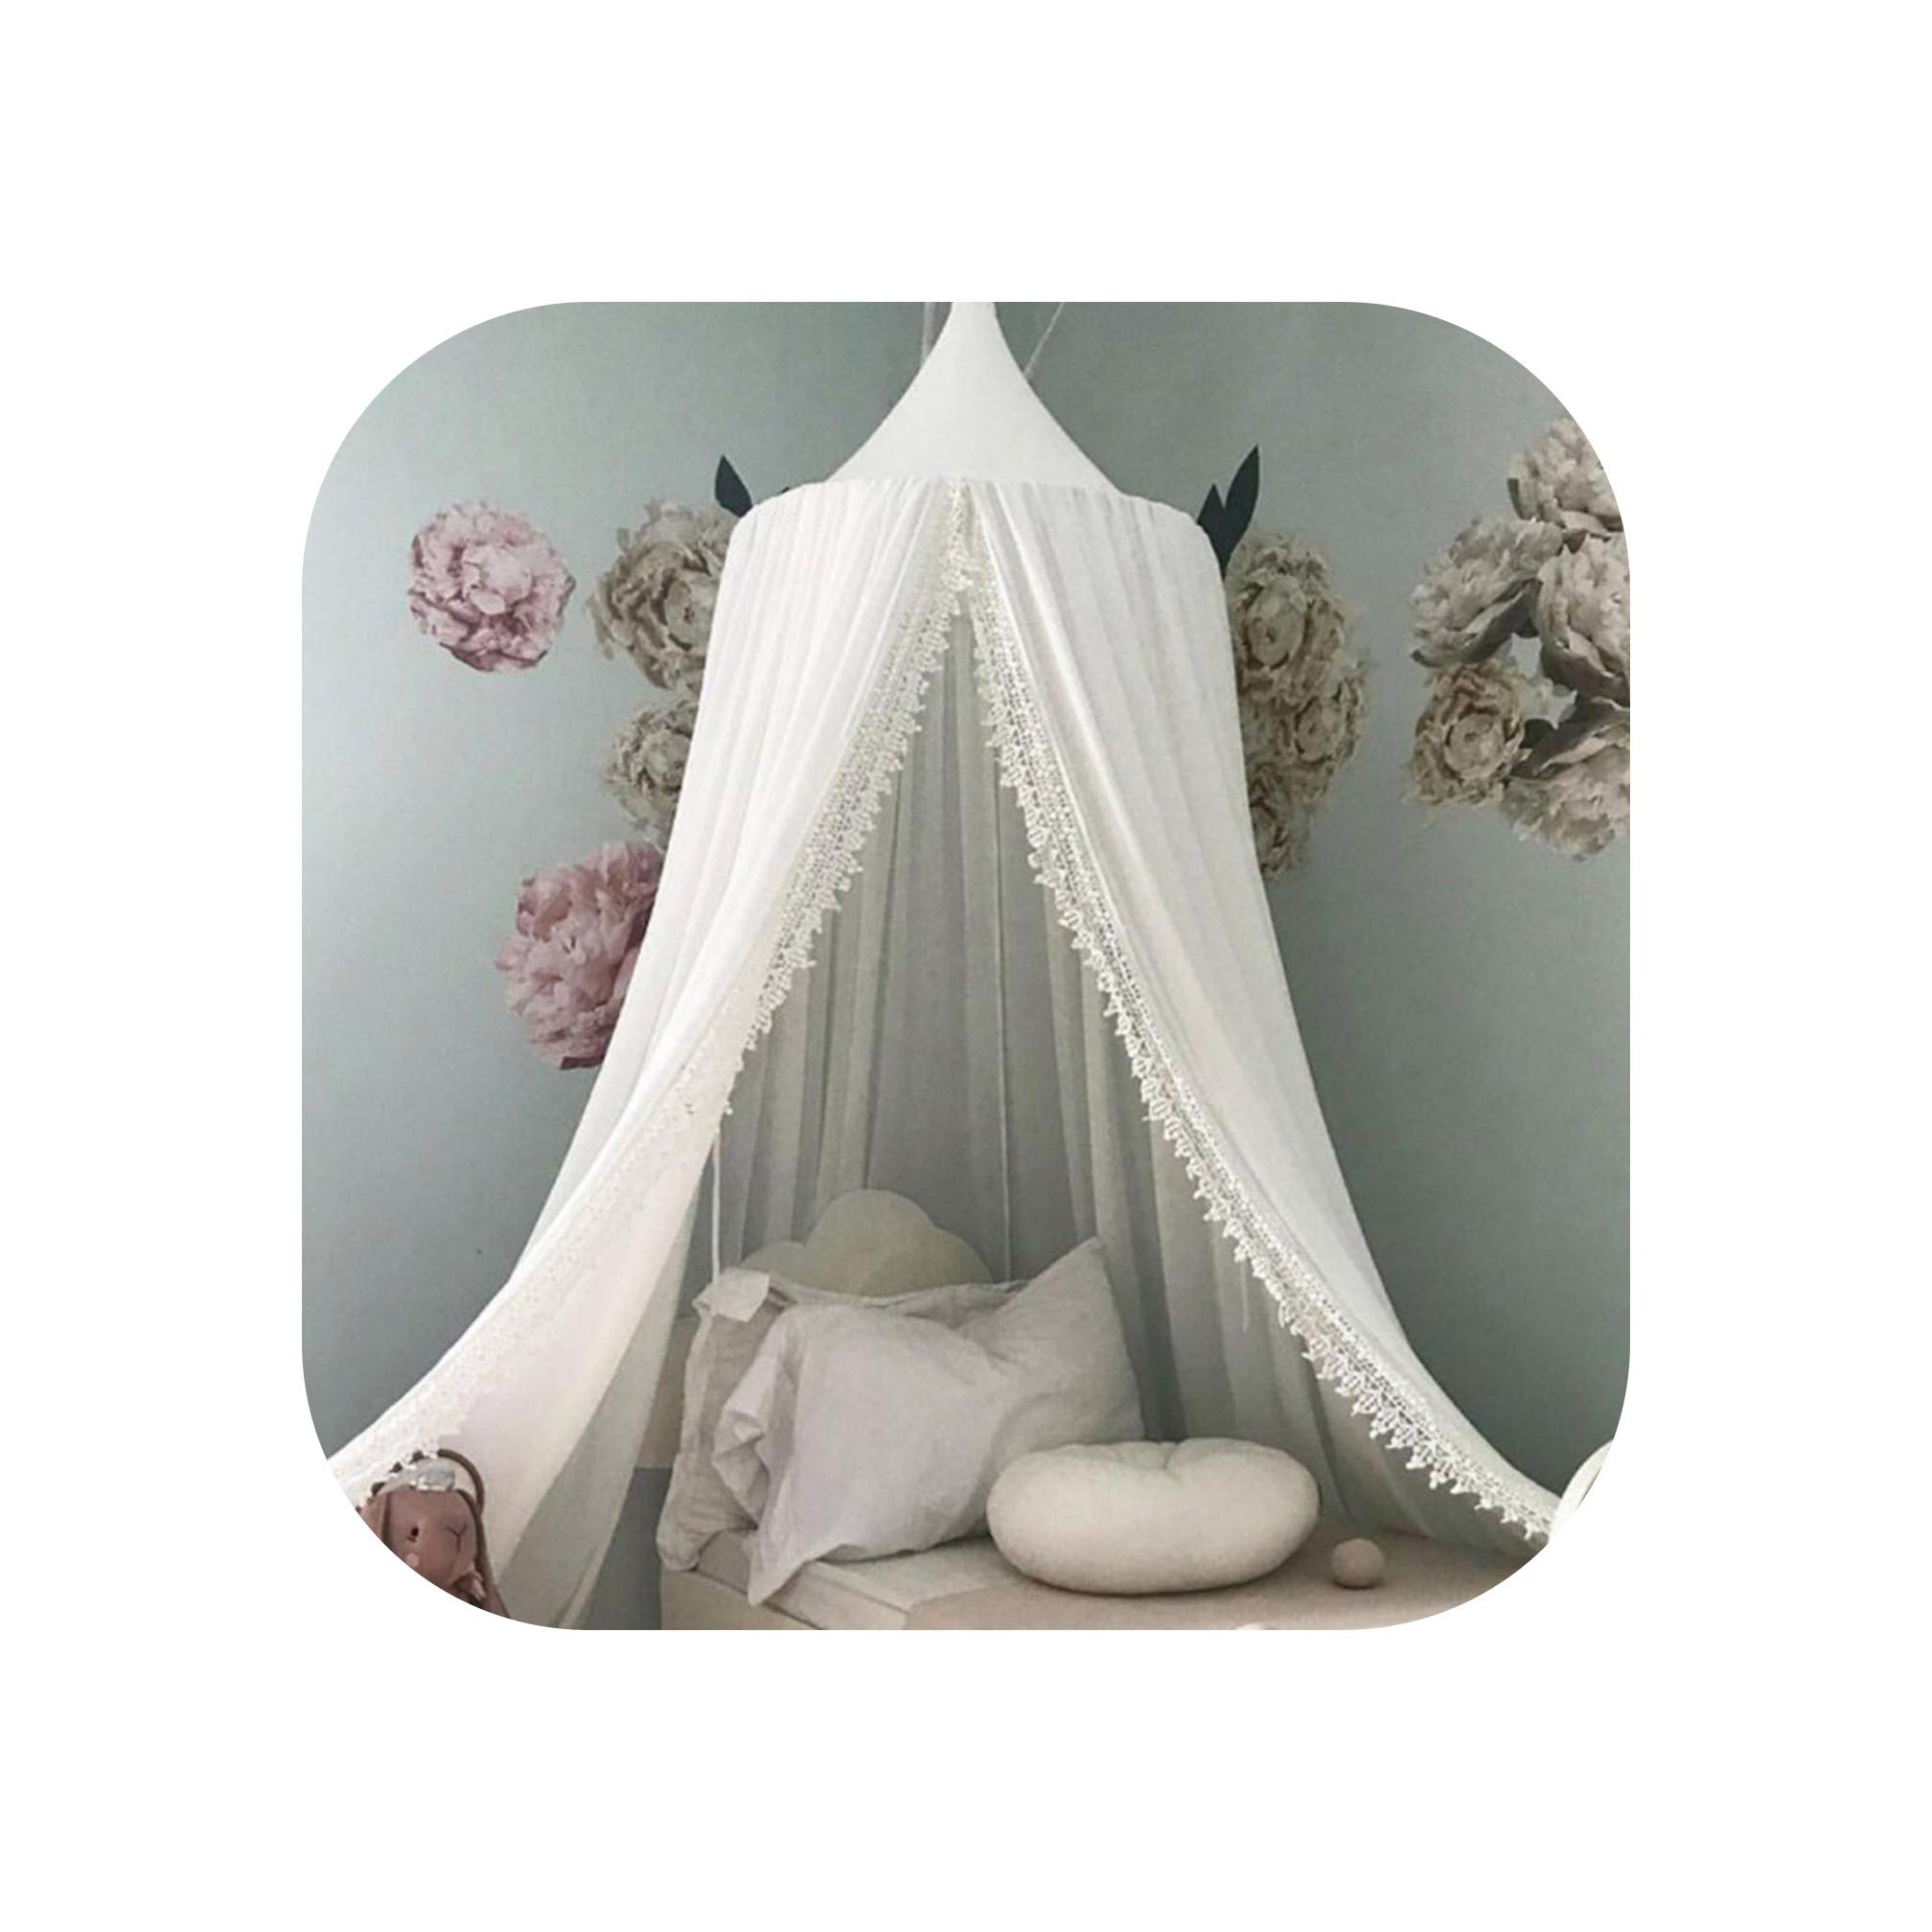 Crib Netting Chiffon Kids Bed Curtain Canopy Round Crib Netting Tent Photography Props Lace Mosquito Net Baby Room Decoration,White